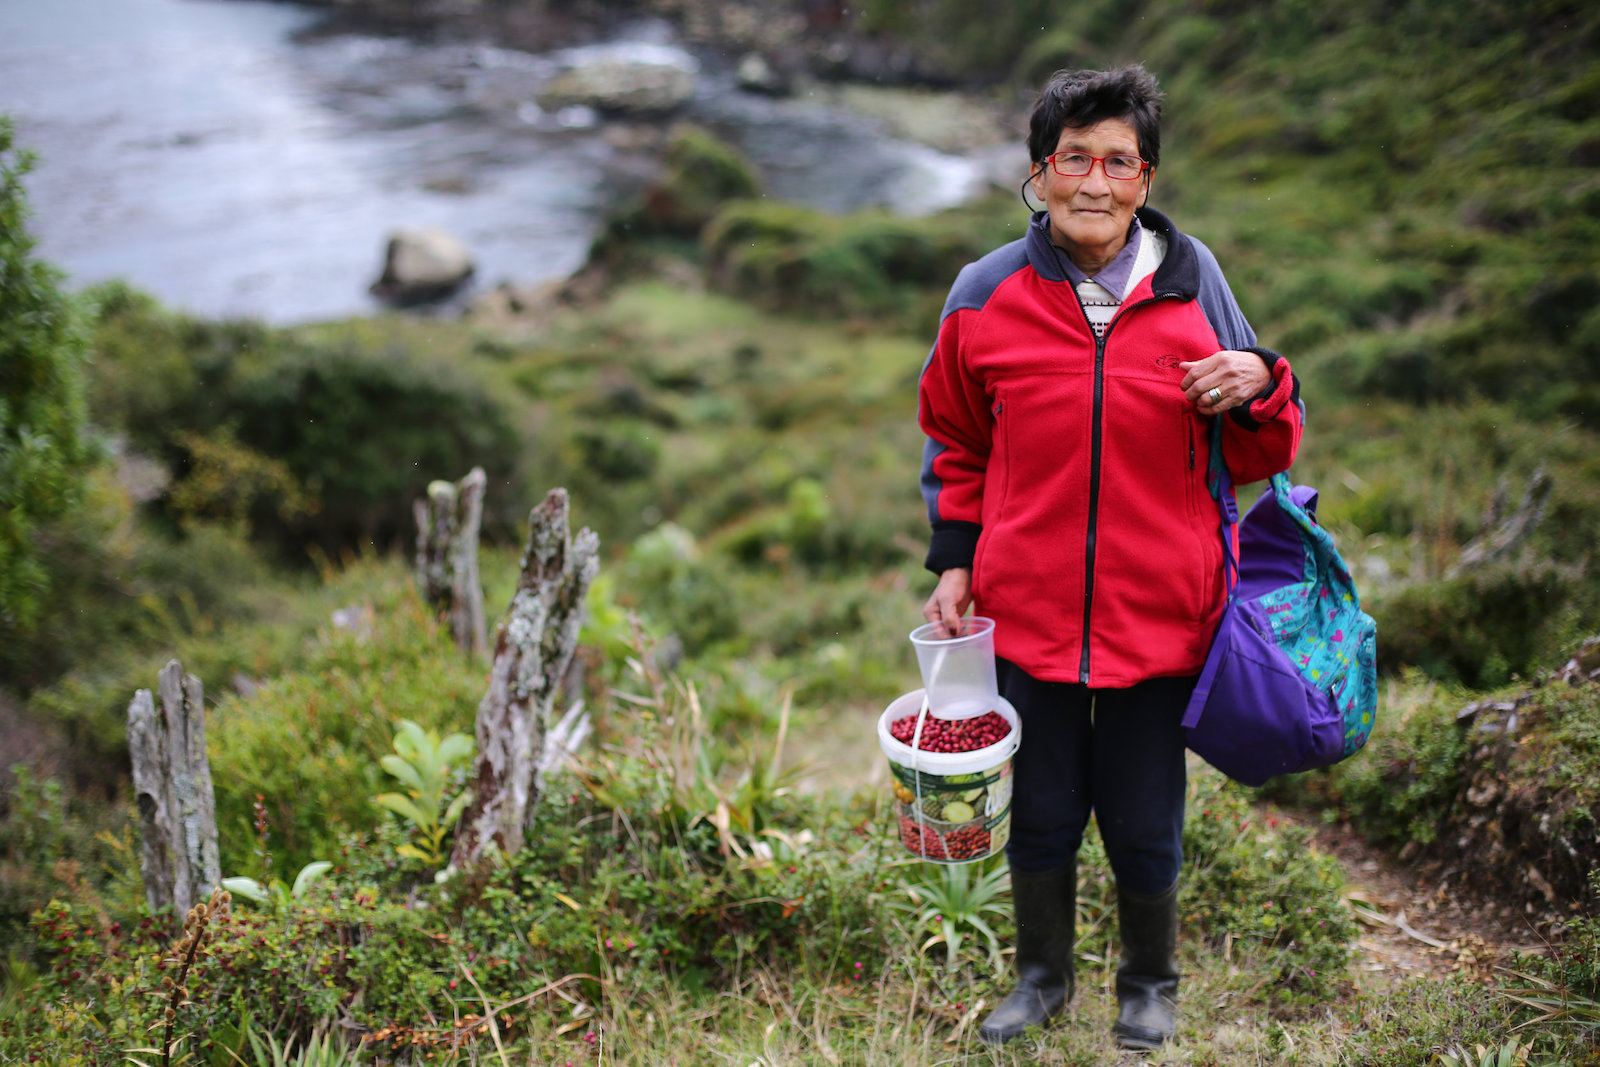 María Georgina Barría Altamirano collects murta to make jam in the commune of Ancud, located in Chiloé. María had to reinvent her job due to the environmental disaster caused by the salmon crisis. Photo by Andrés Pérez for R35R